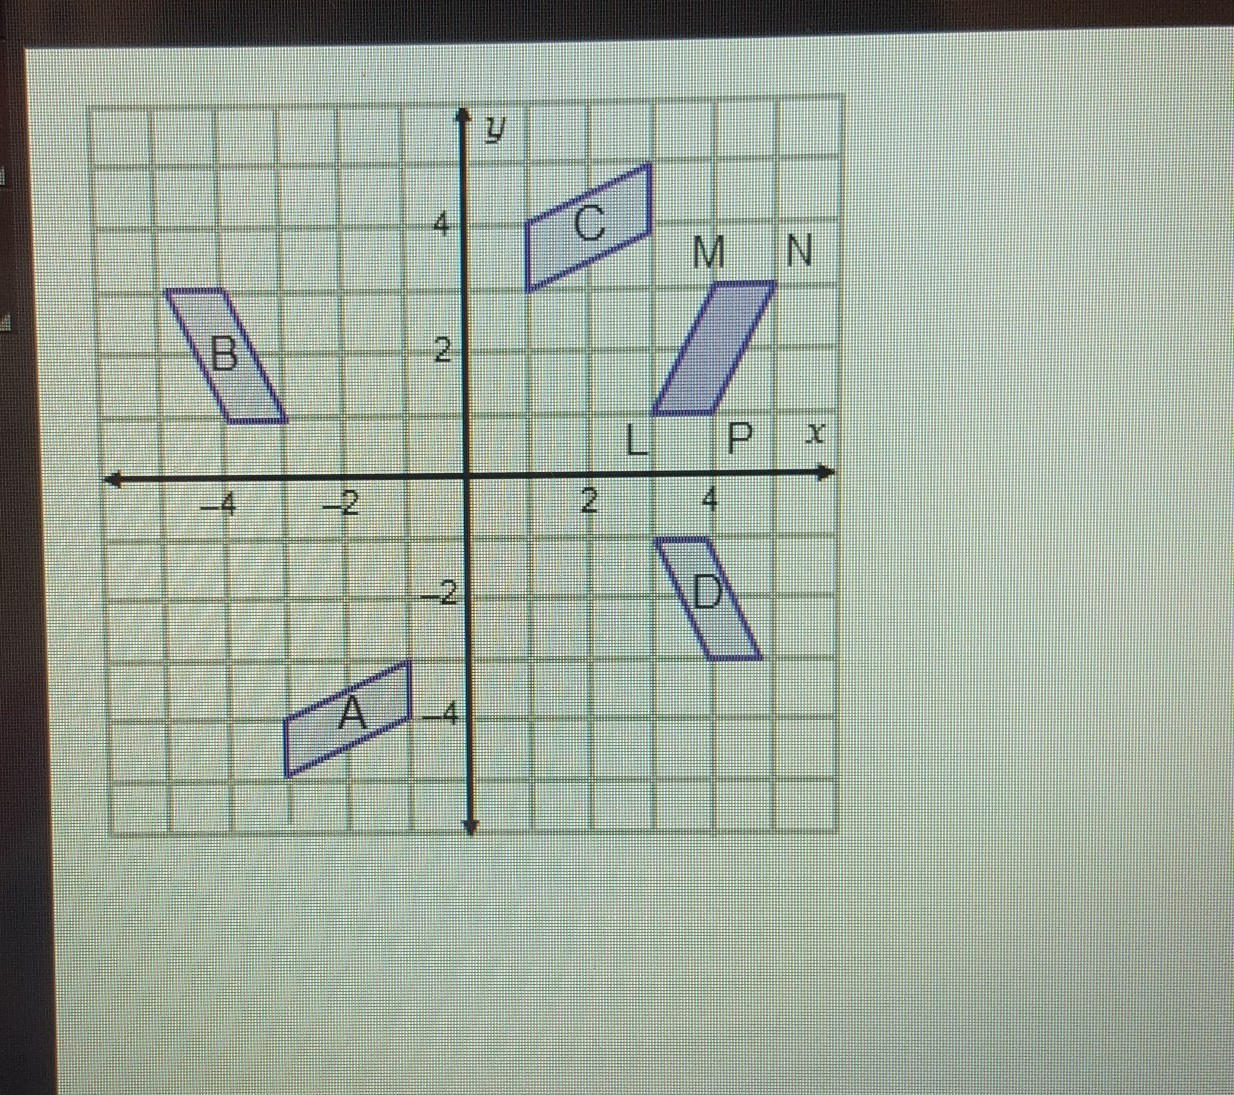 Which Figure Represents The Image Of Parallelogram Lmnp